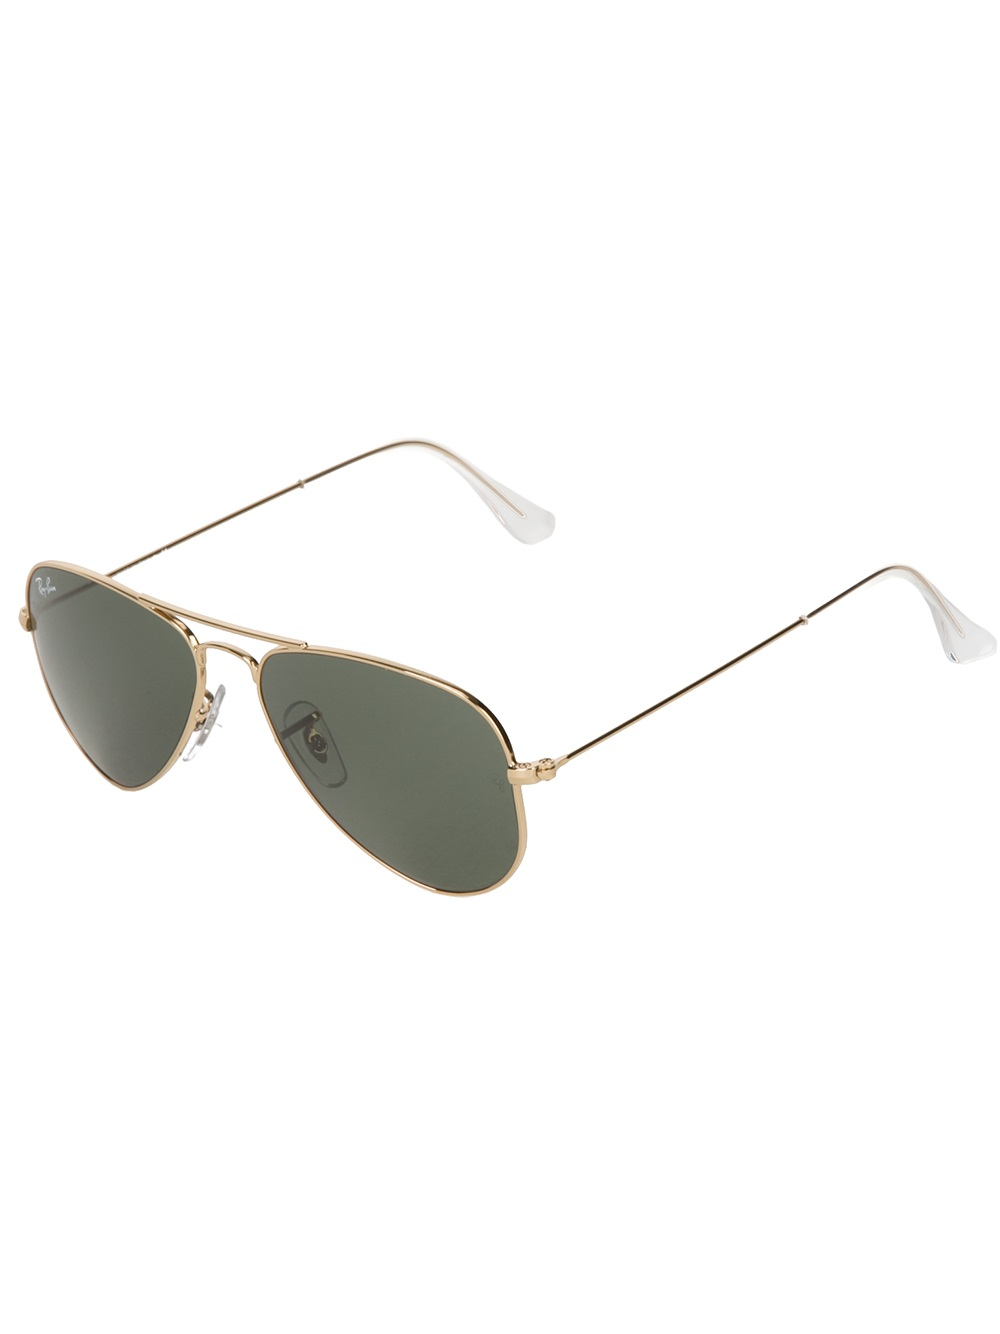 eff08a5bd7 Ray Ban Classic Aviator Sunglasses